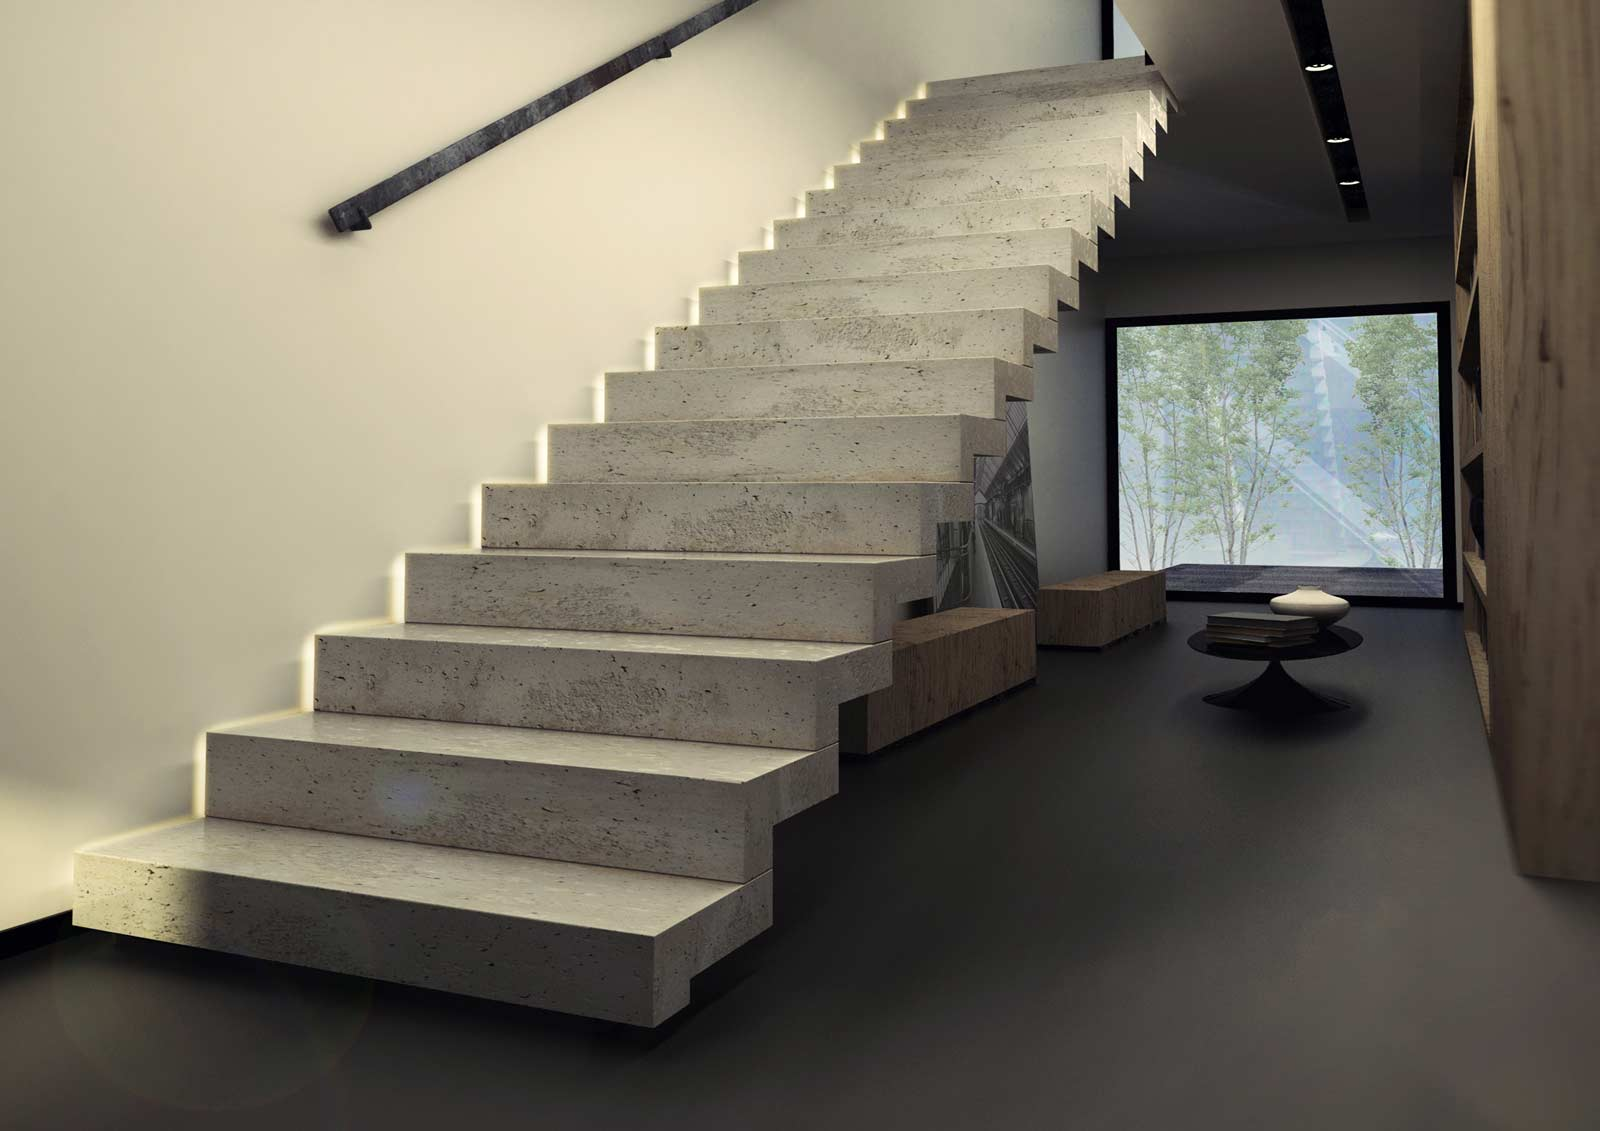 Le top 10 des escaliers droits design le blog de loftboutik for Creer un escalier interieur